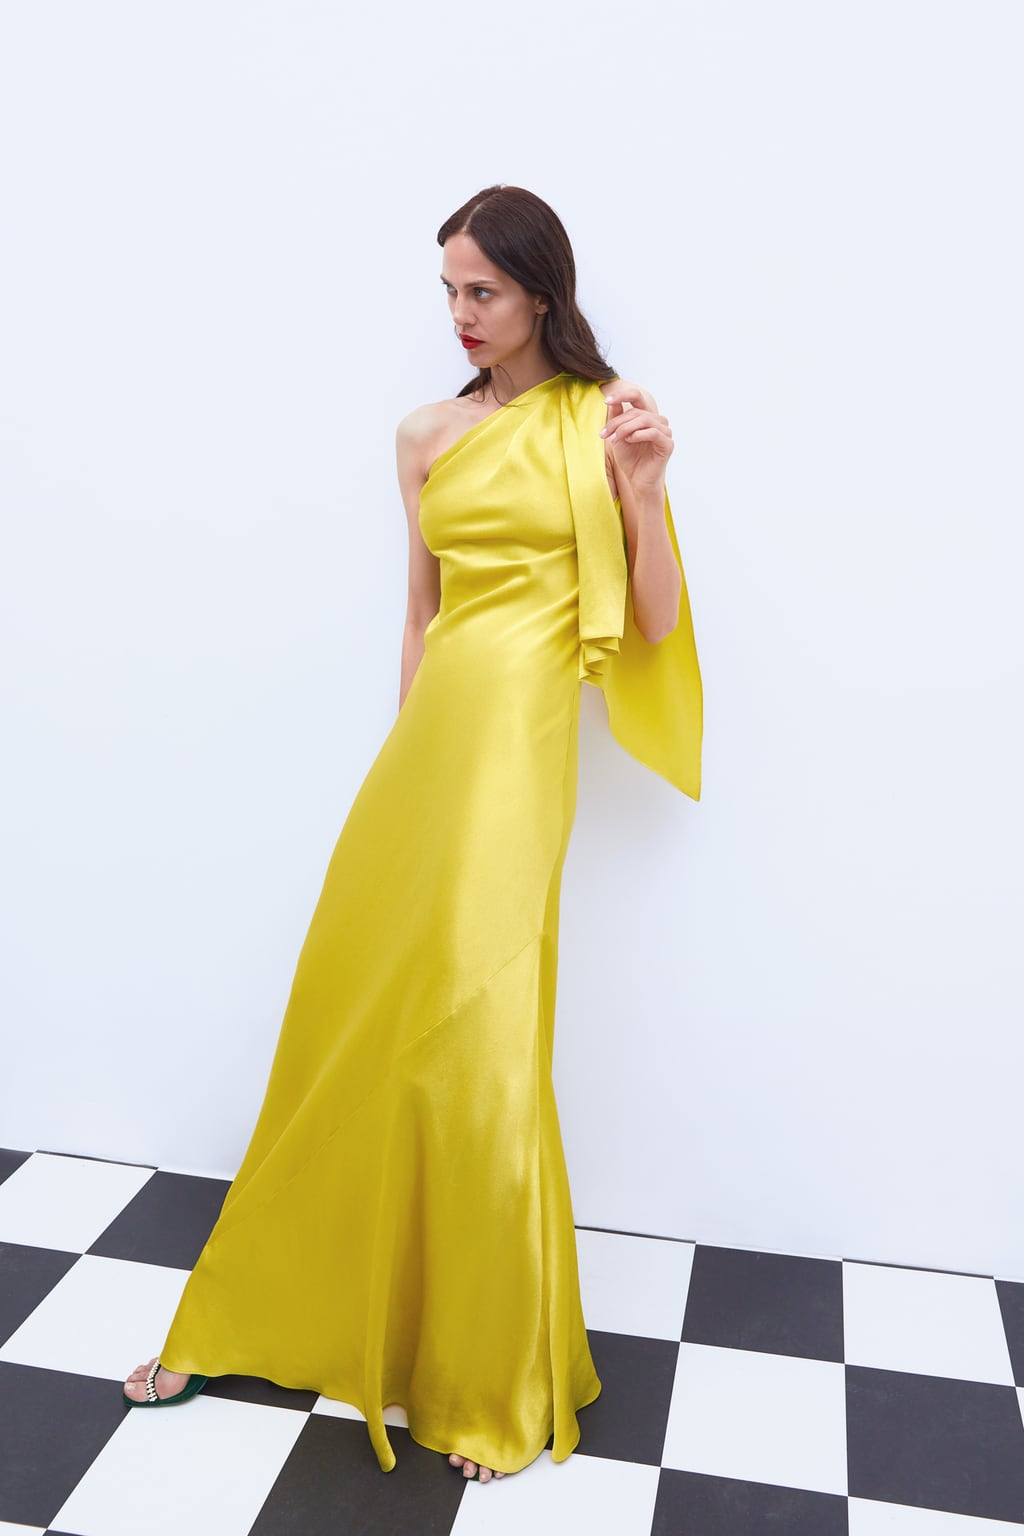 YELLOW ONE-SHOULDER DRESS - 95.99 GBP